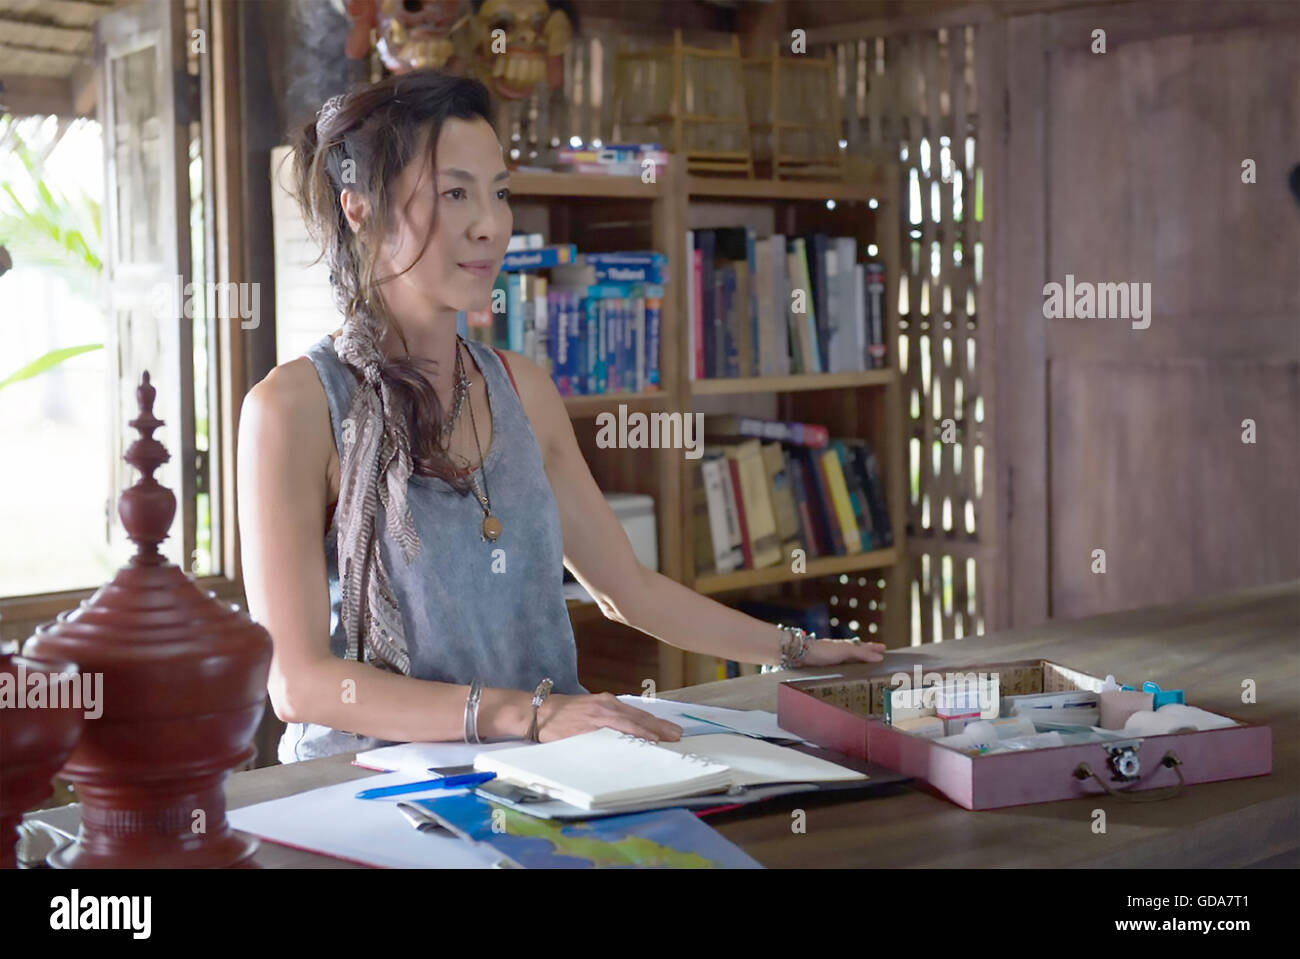 MECHANIC : RESURRECTION 2016 Chartoff-Winkler Productions film with Michelle Yeoh - Stock Image